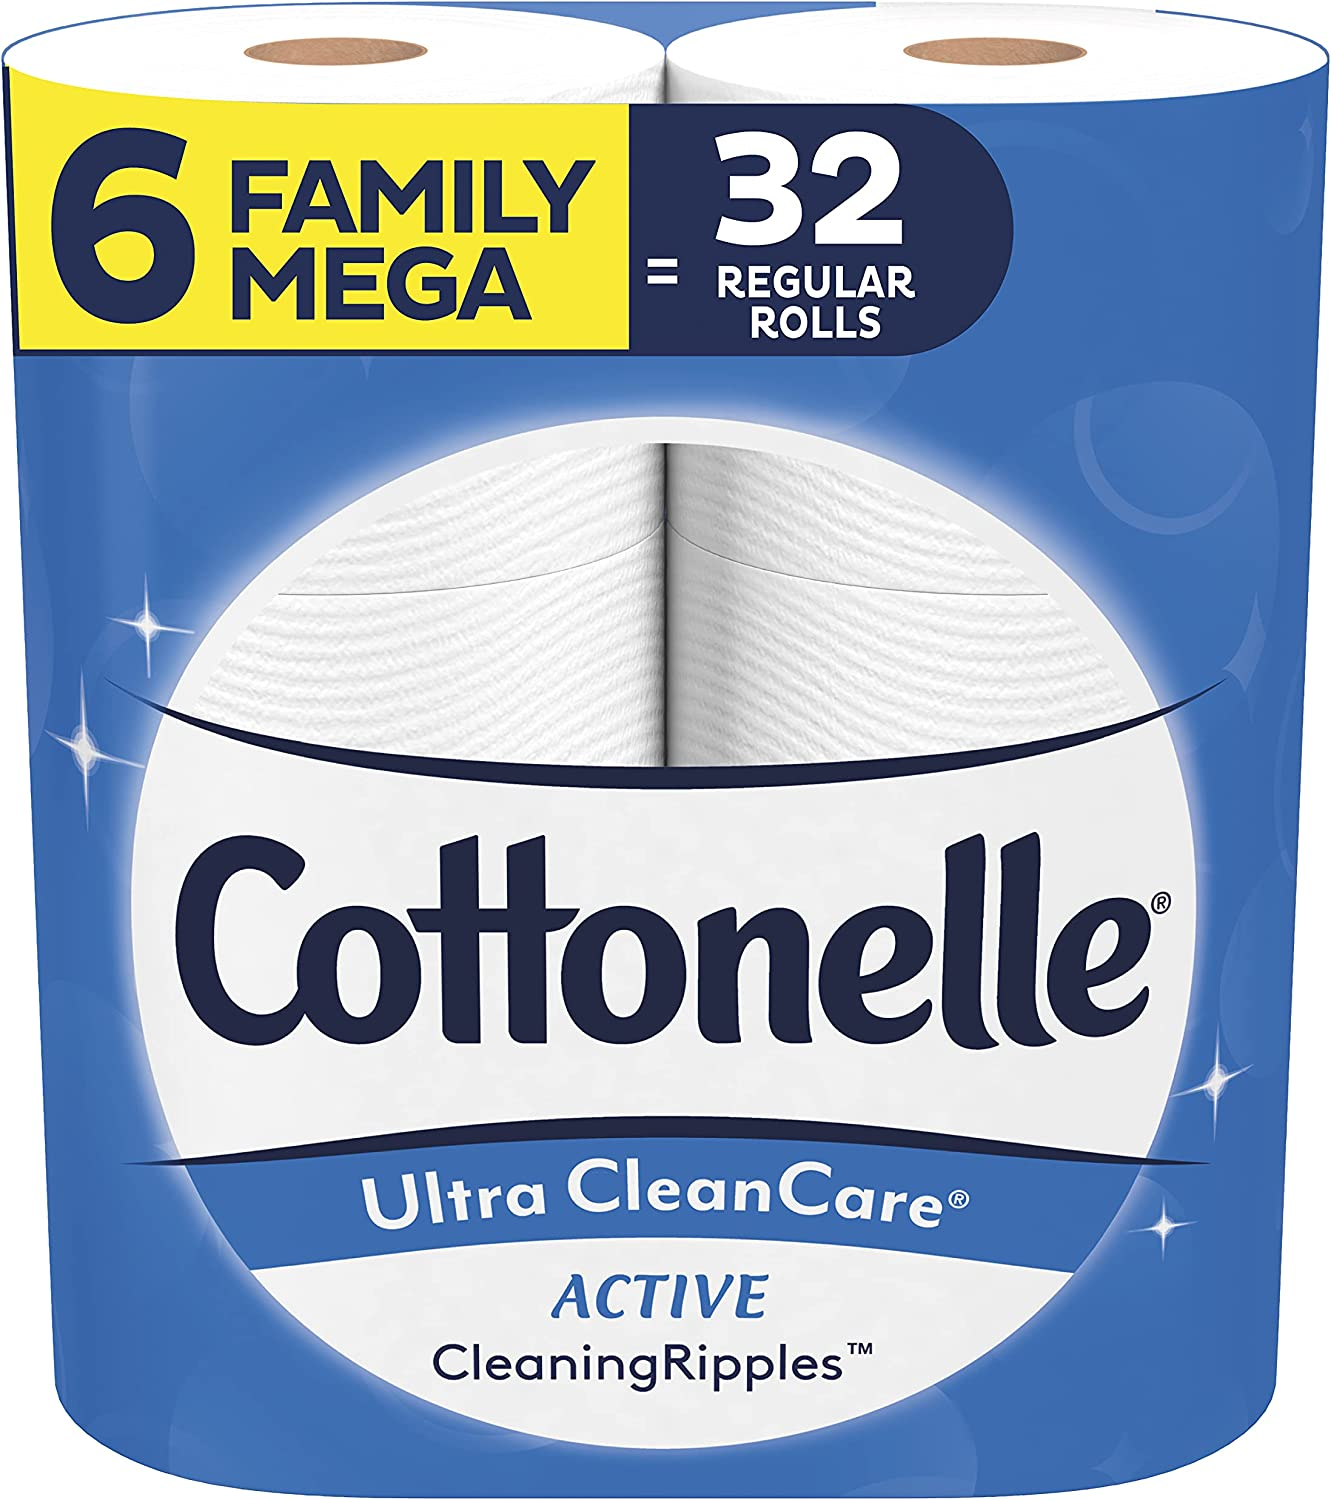 Cottonelle Ultra CleanCare Strong Toilet Paper with Active Cleaning Ripples, 6 Family Mega Rolls, Bath Tissue (6 Family Mega Rolls = 32 Regular Rolls) : Health & Household